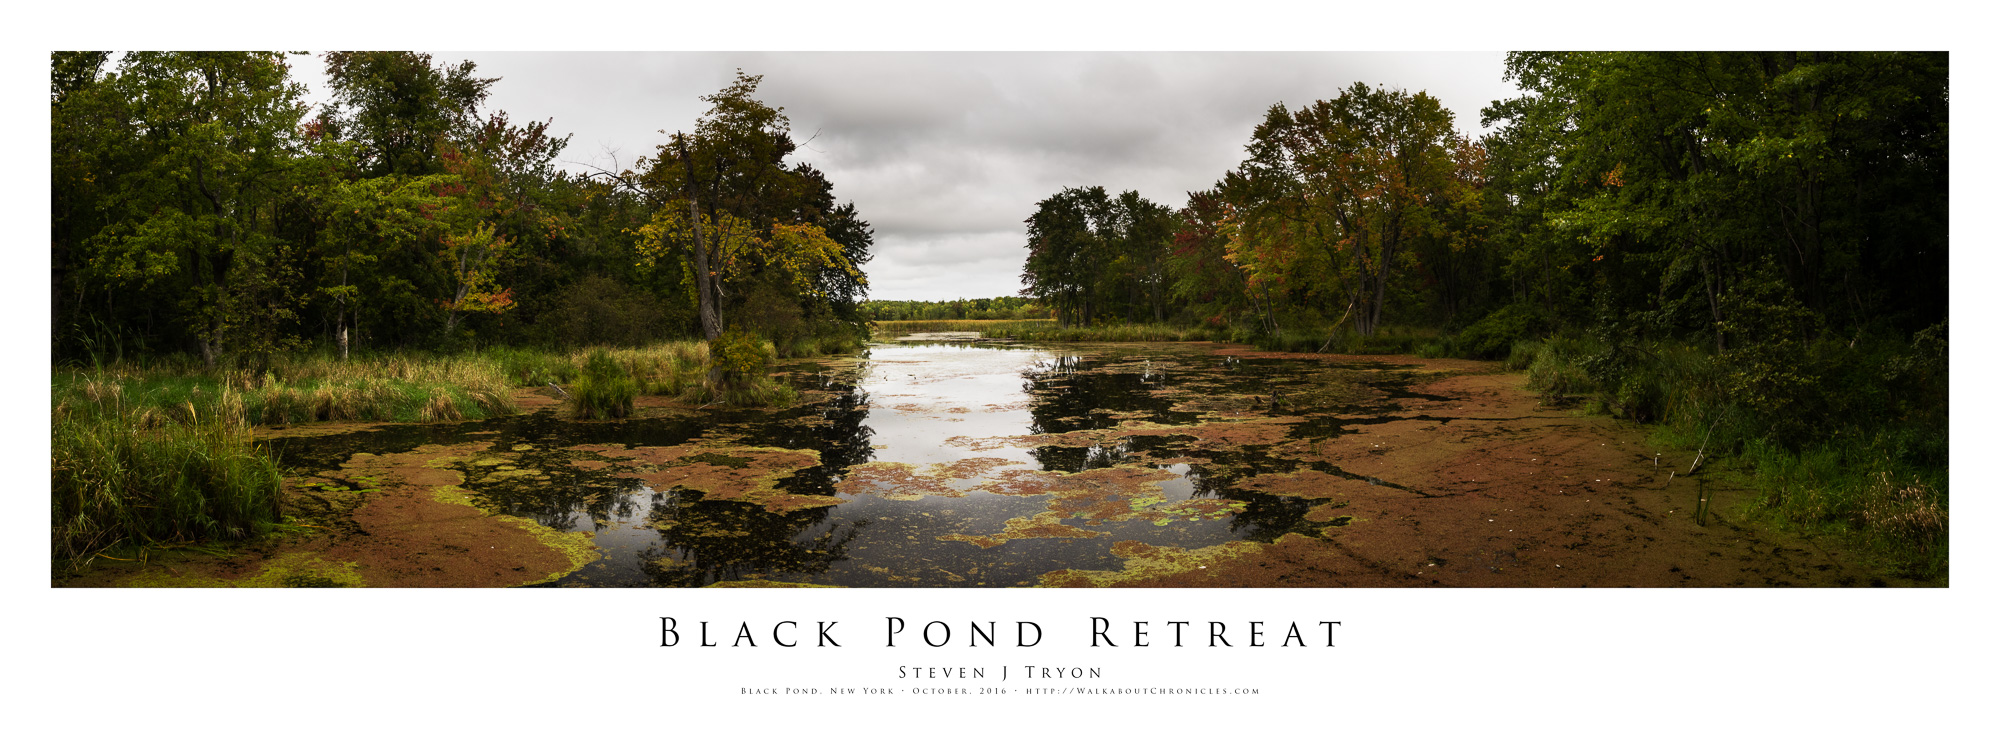 Black Pond Retreat